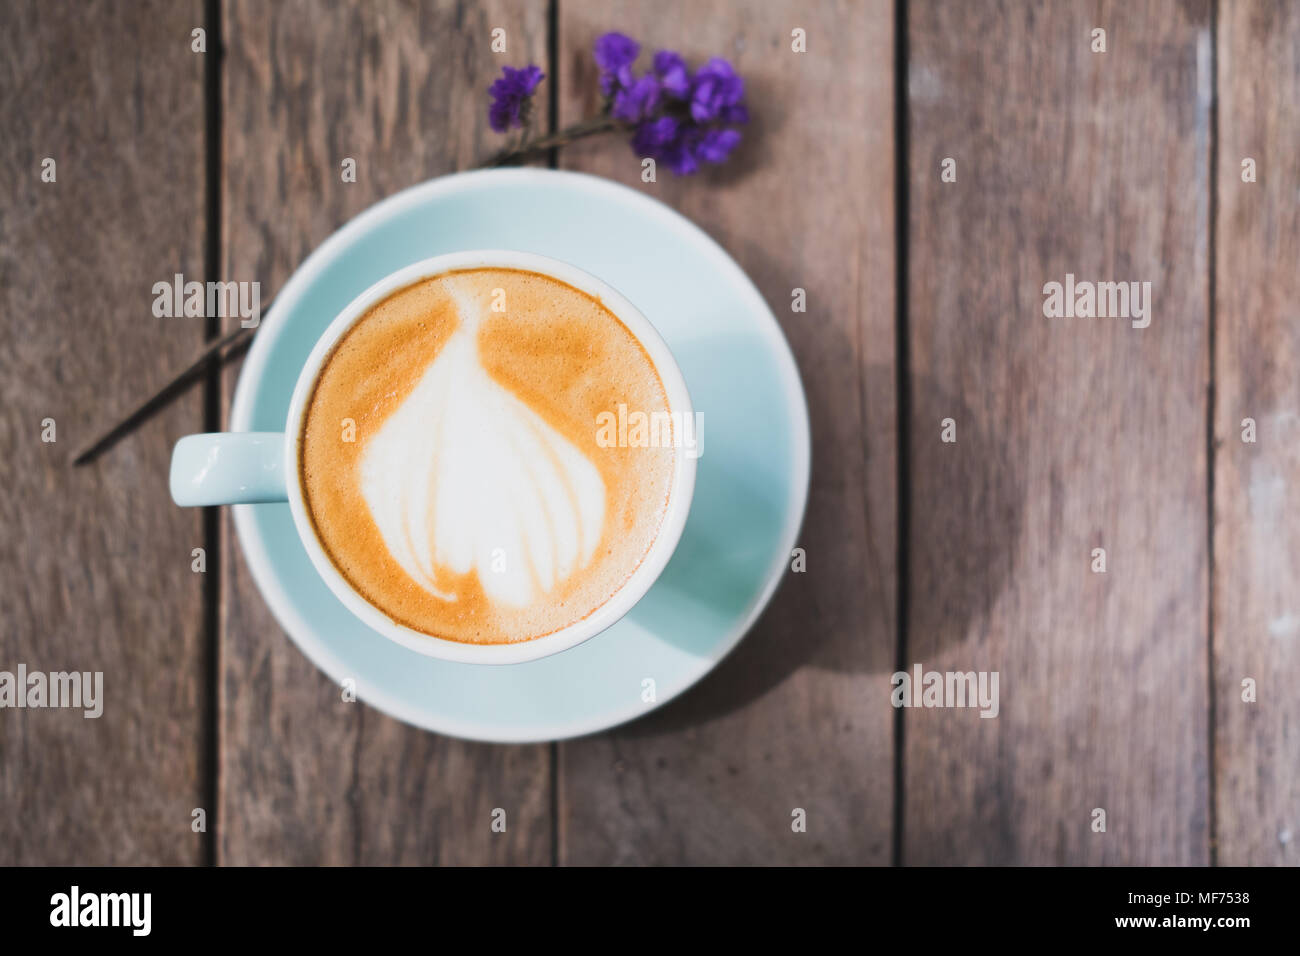 Top view of hot coffee in green cup with latte art on wooden plank table with forget me not flower,Food and drink concept,vintage filter Stock Photo